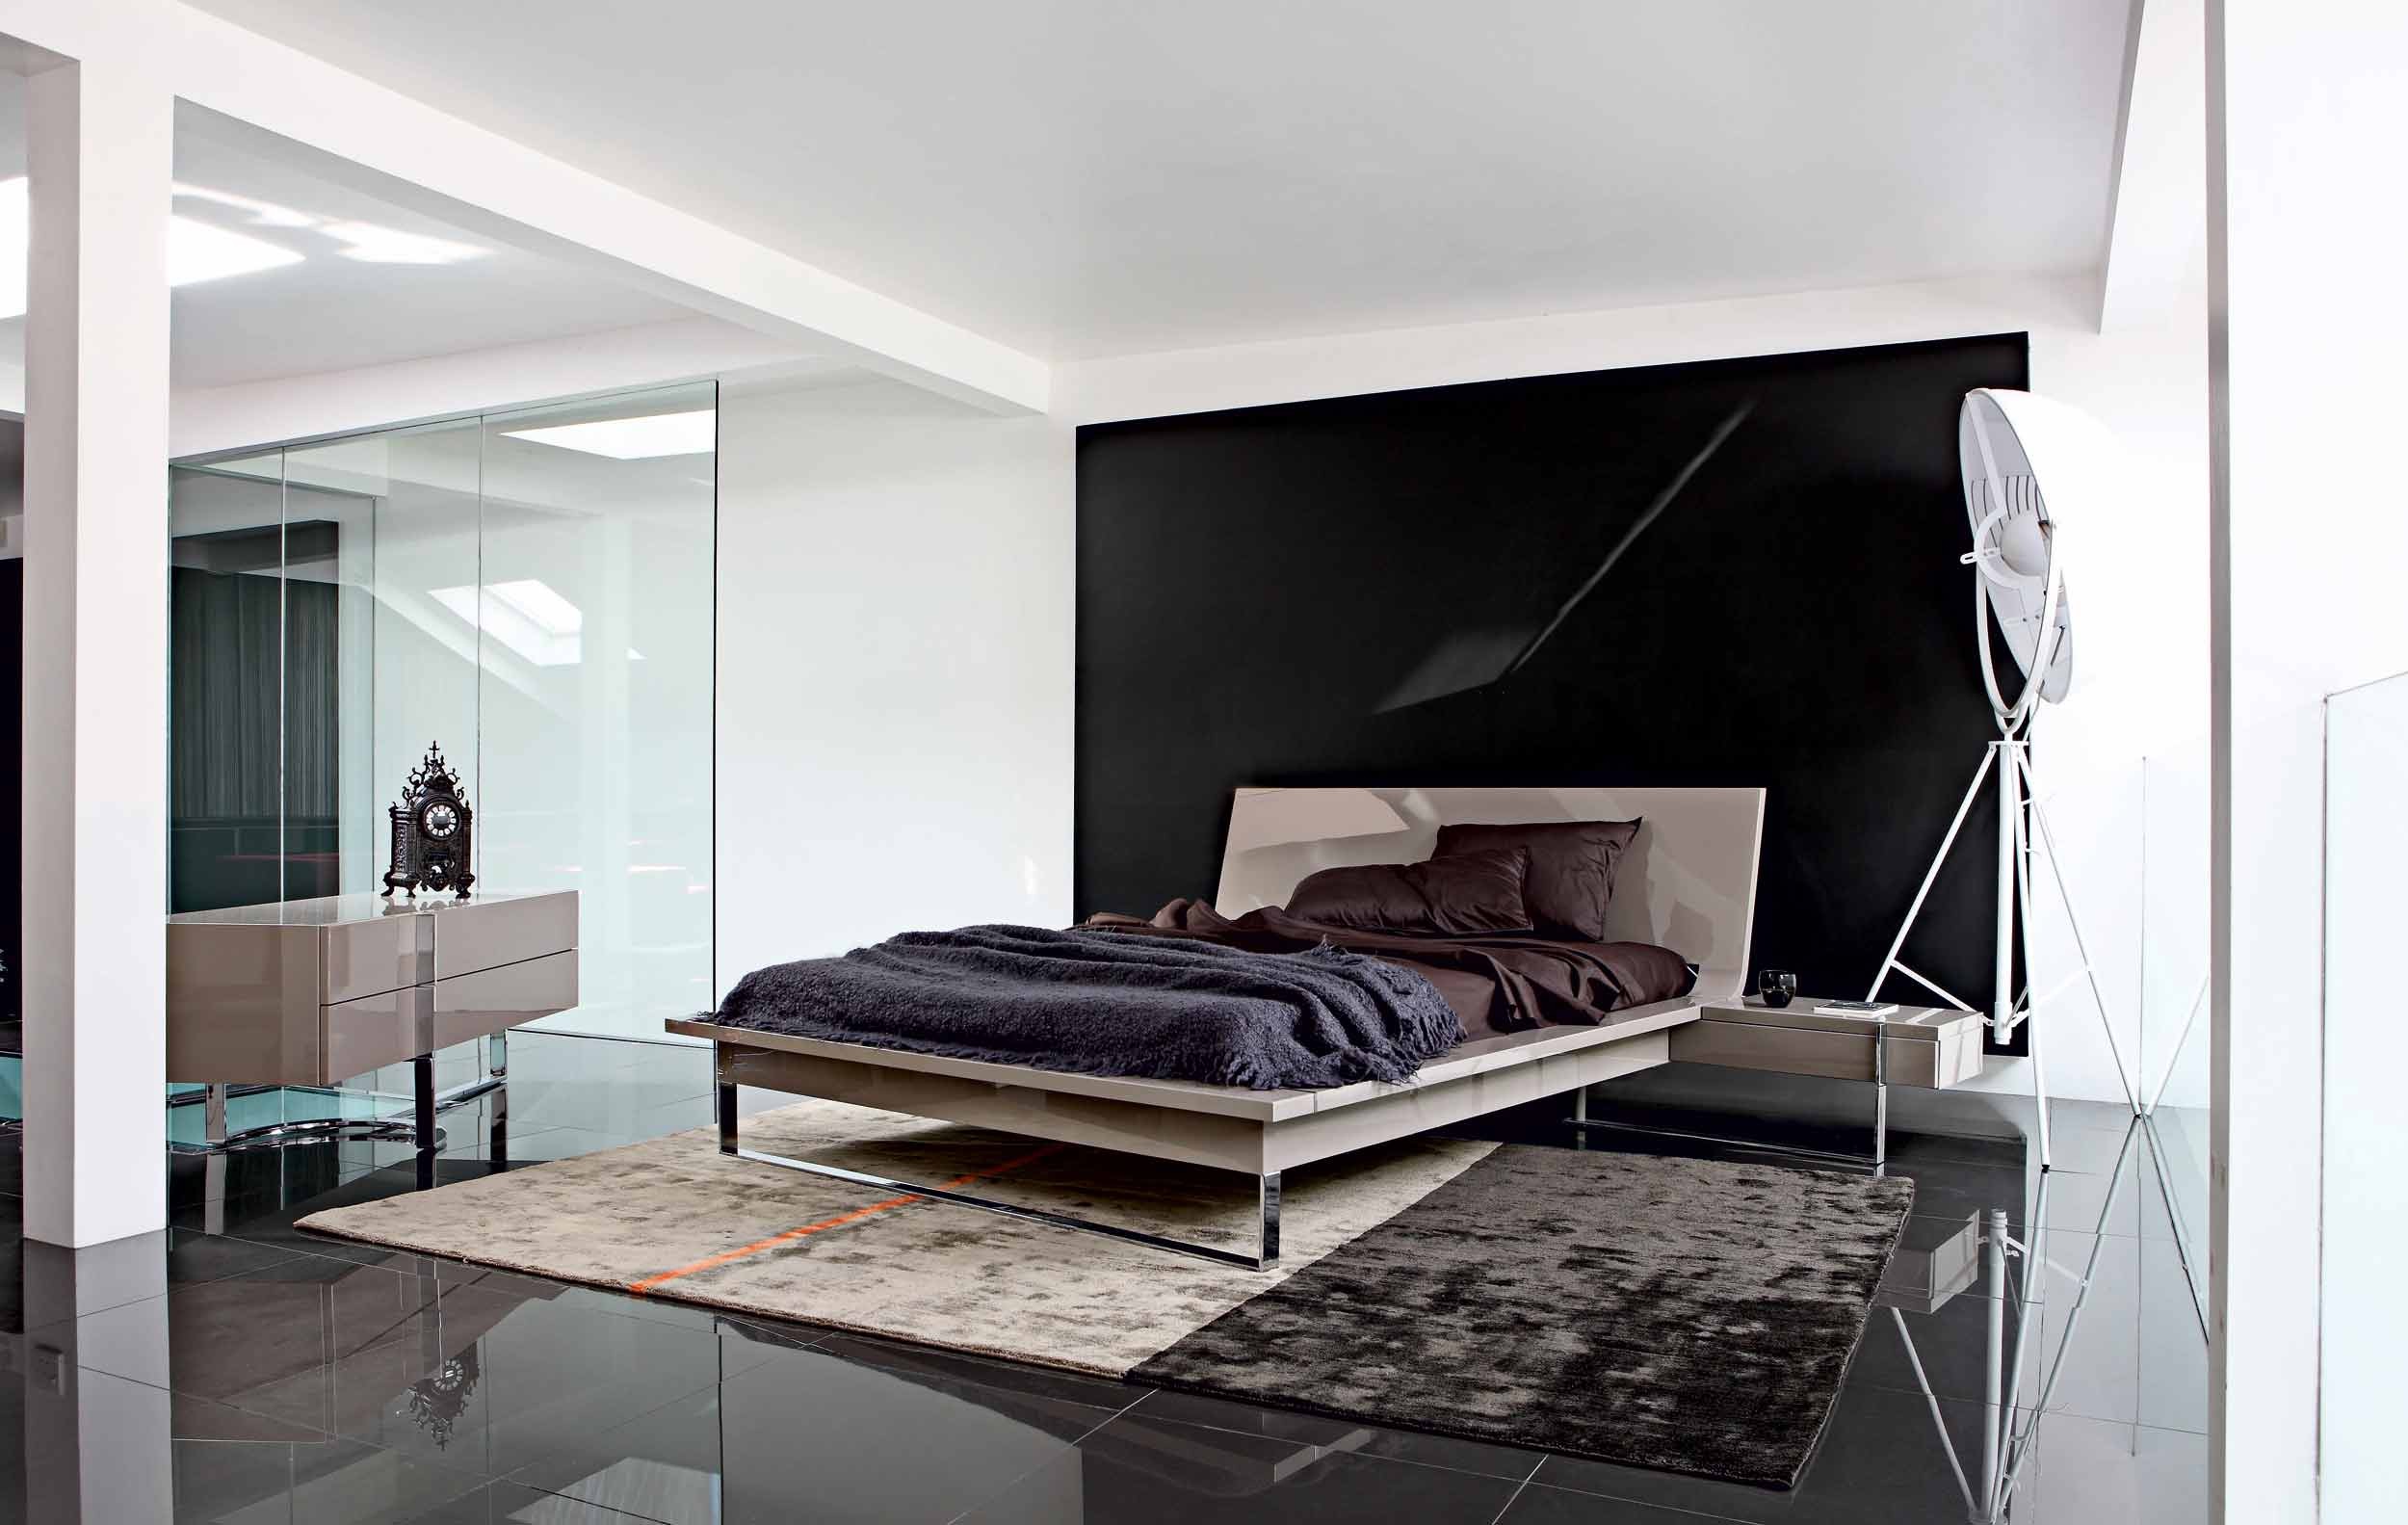 Minimalist bedroom interior design ideas for Minimalist small bedroom ideas